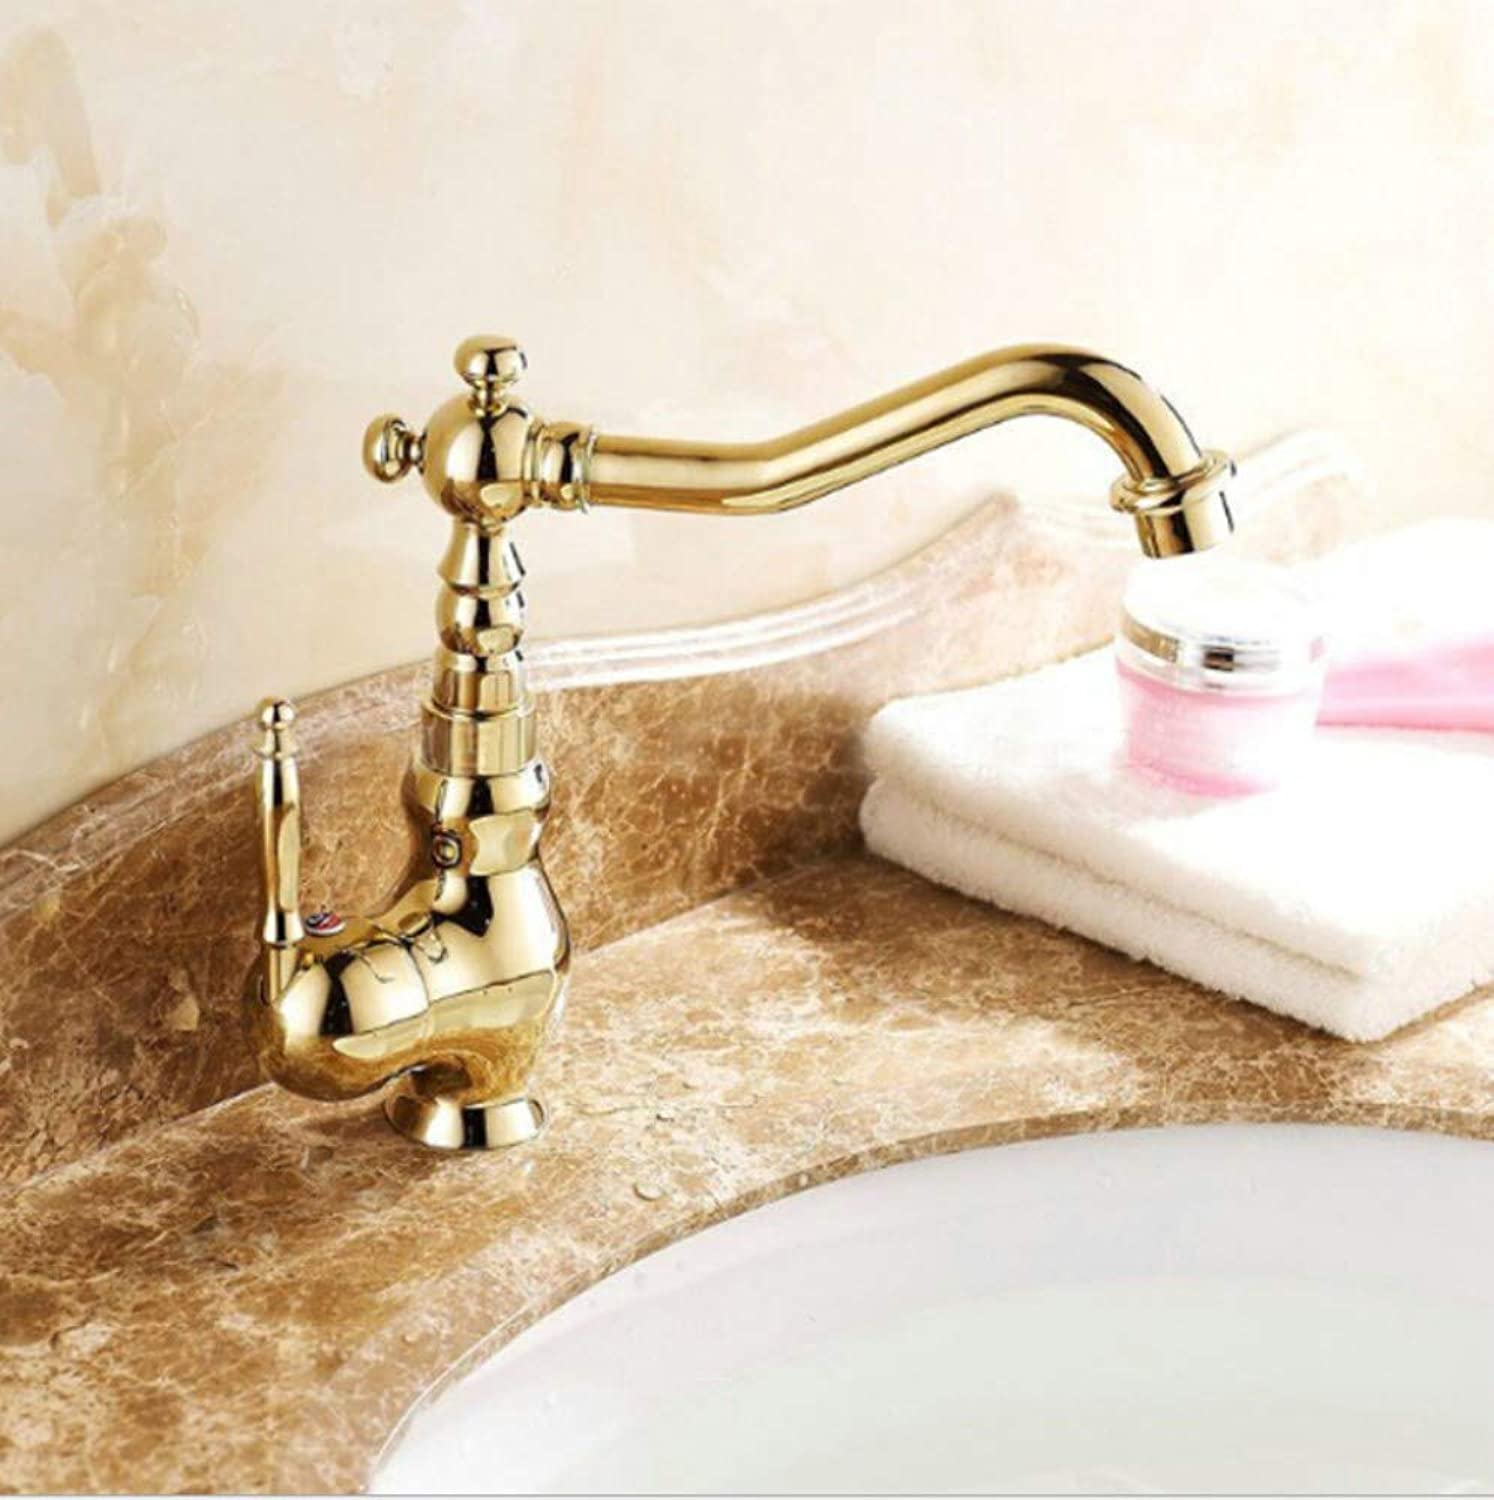 Bathroom Sink Basin Lever Mixer Tap Brass-Plated gold Basin, Hot and Cold Water Faucet, Basin, Basin, Basin, redary Mixing Faucet, Single Hole